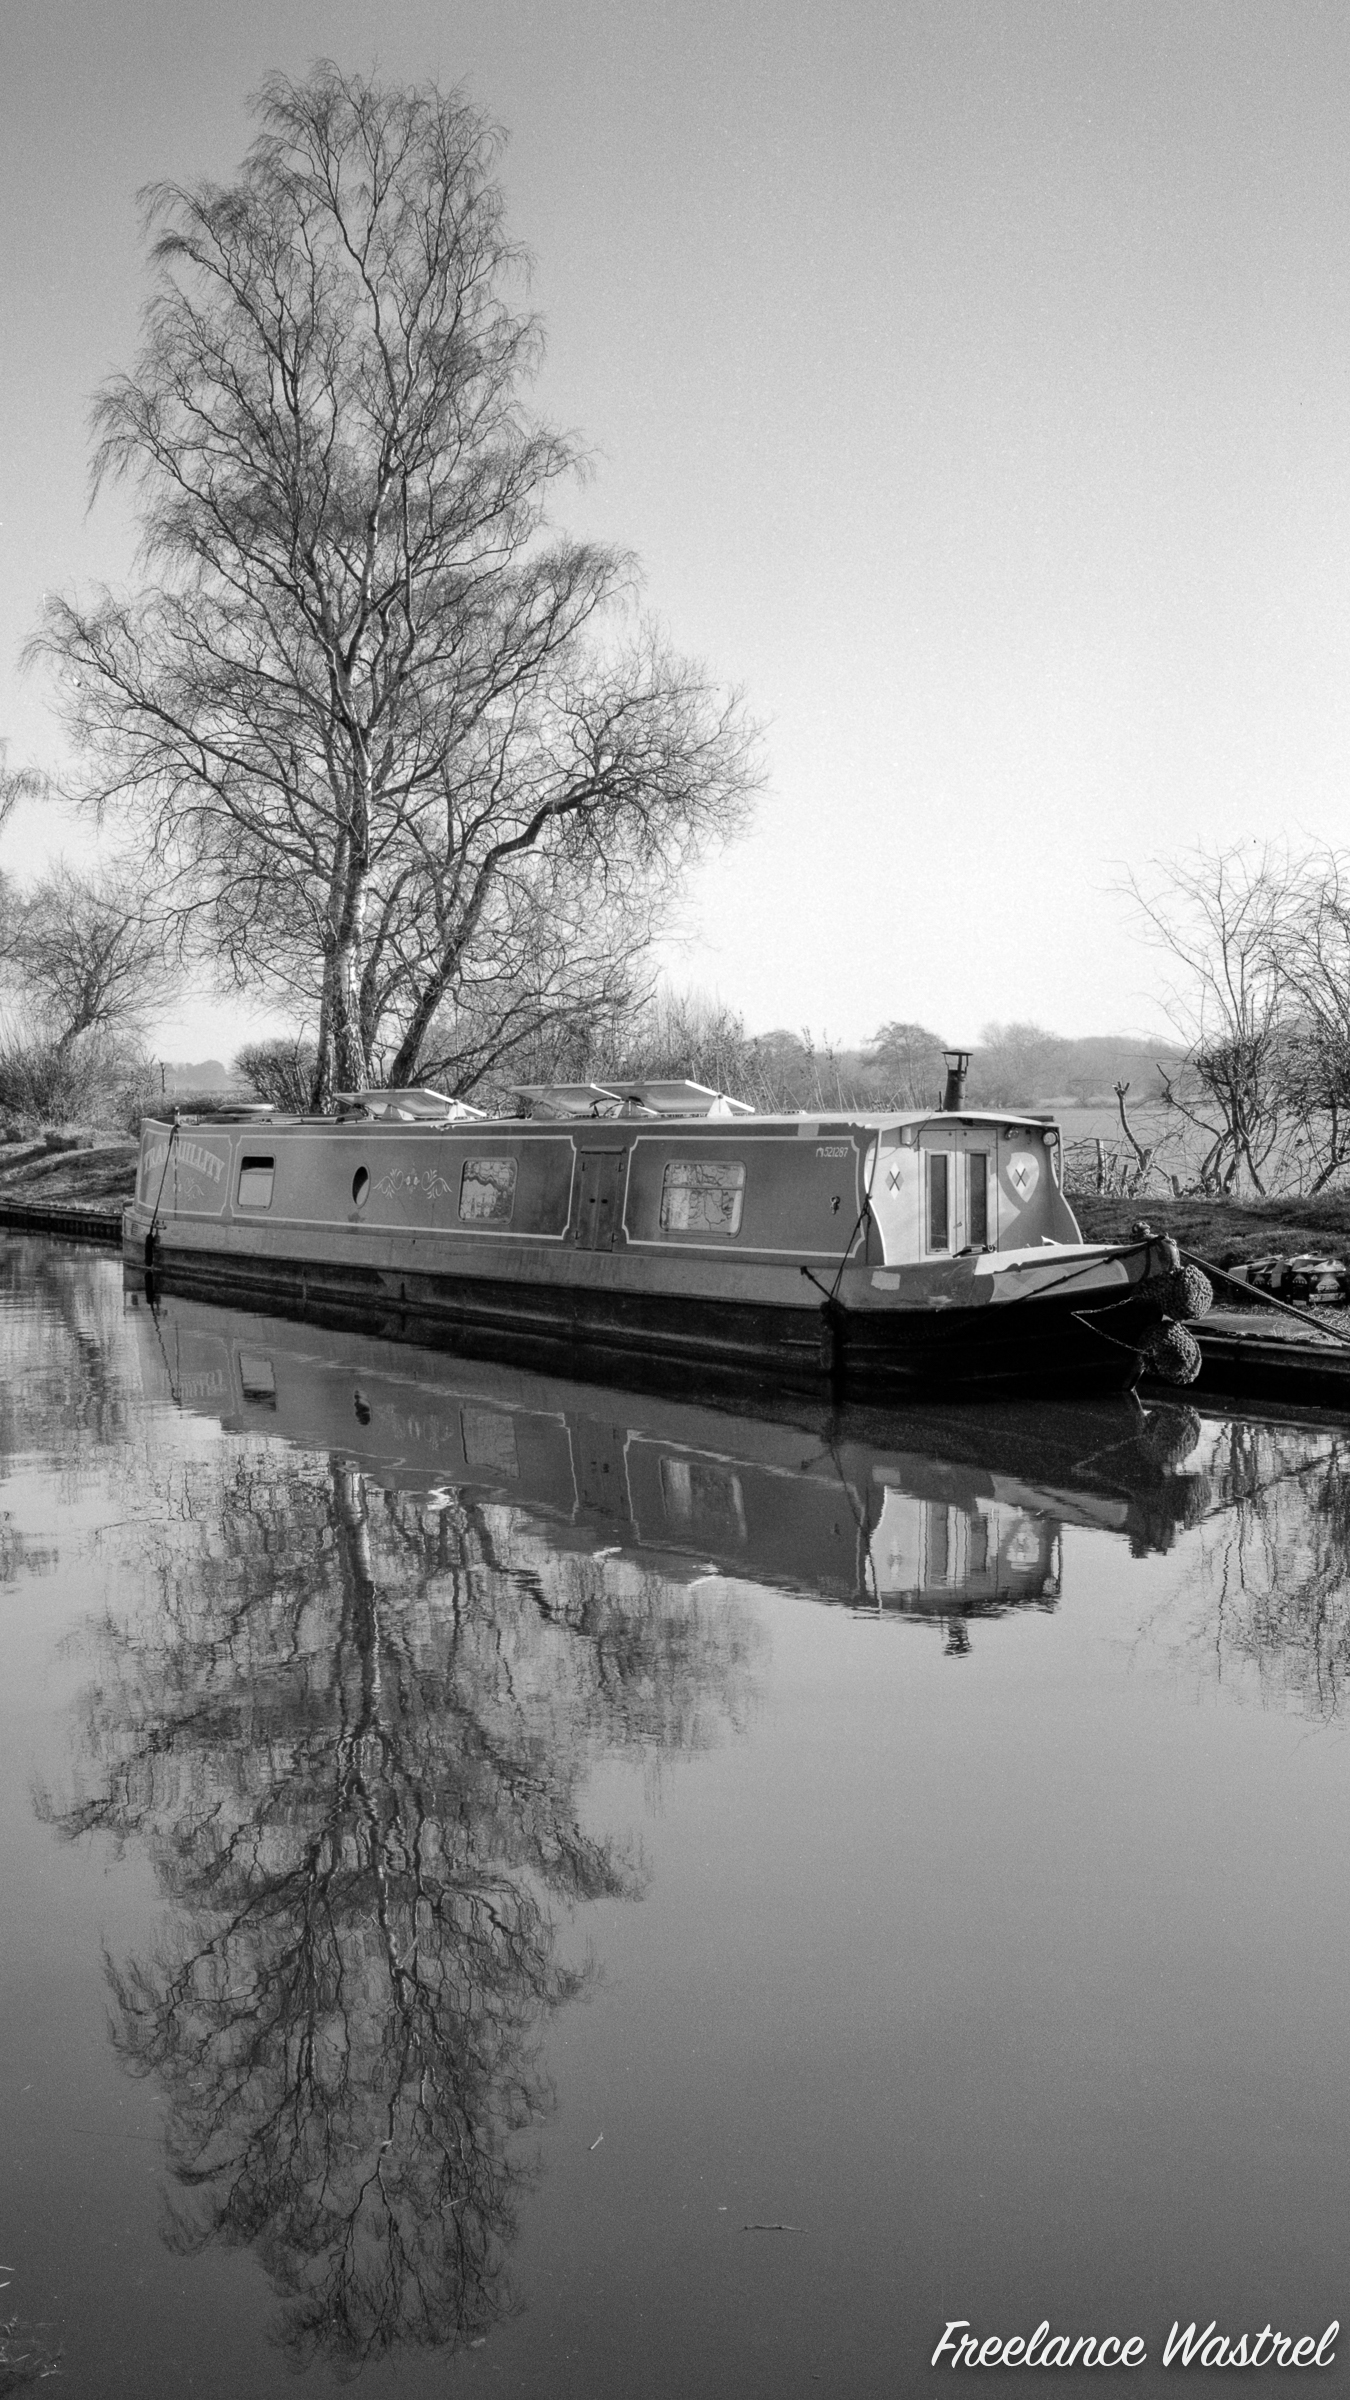 The narrowboat 'Tranquillity', February 2019